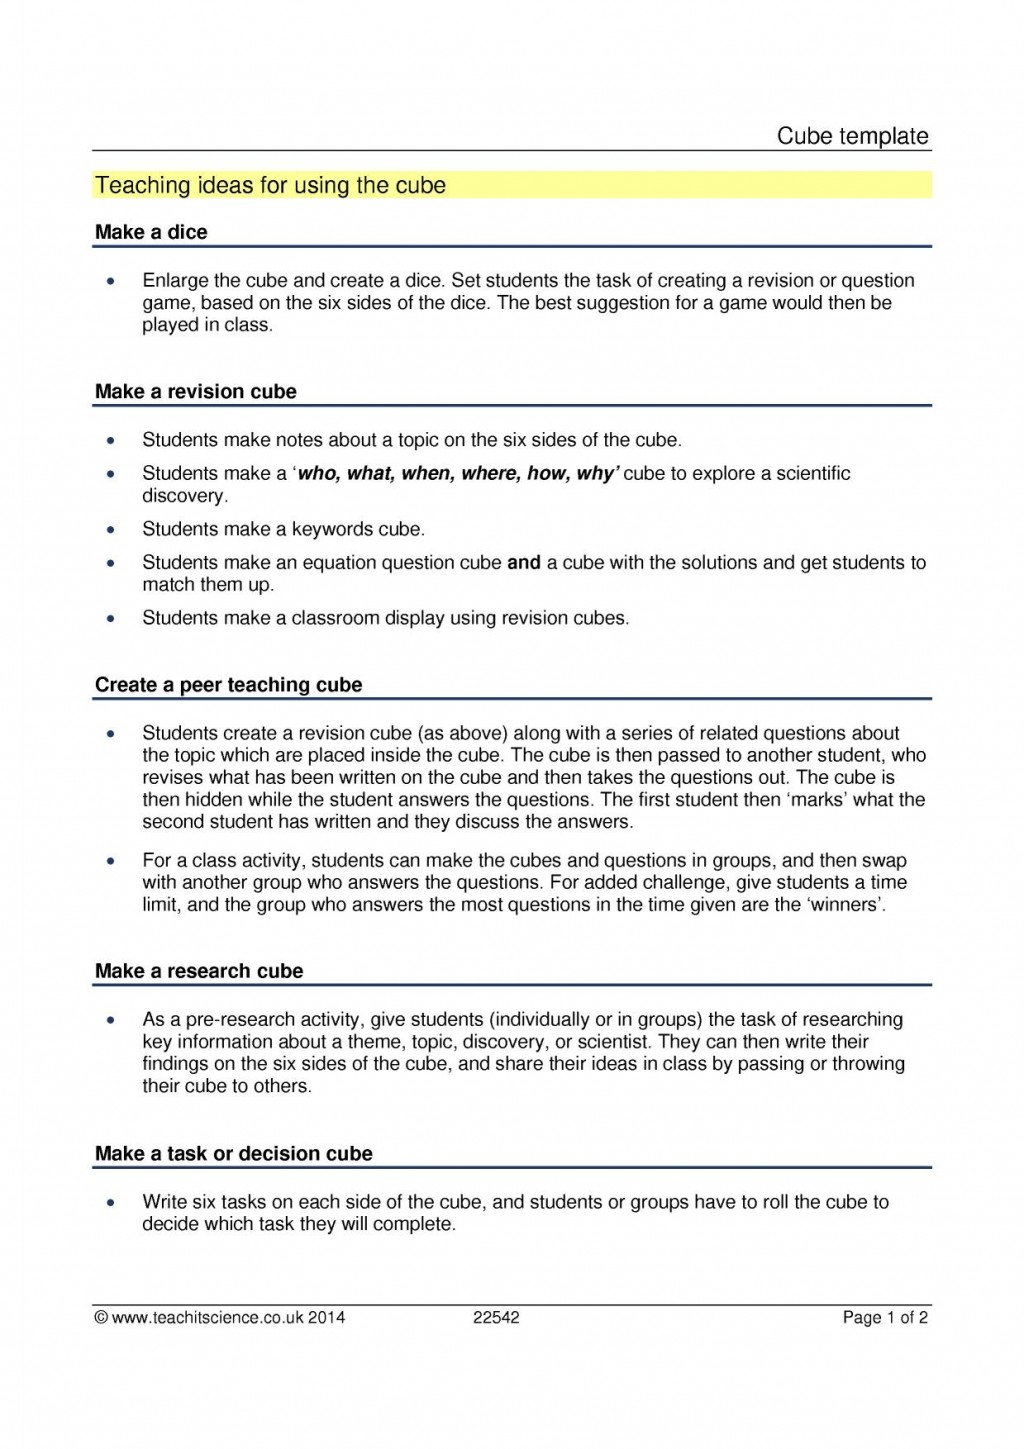 005 Essay Writing Jobs Online For Freelance Writers Essays Term Papers Uk X India Archaicawful In Kenya Large